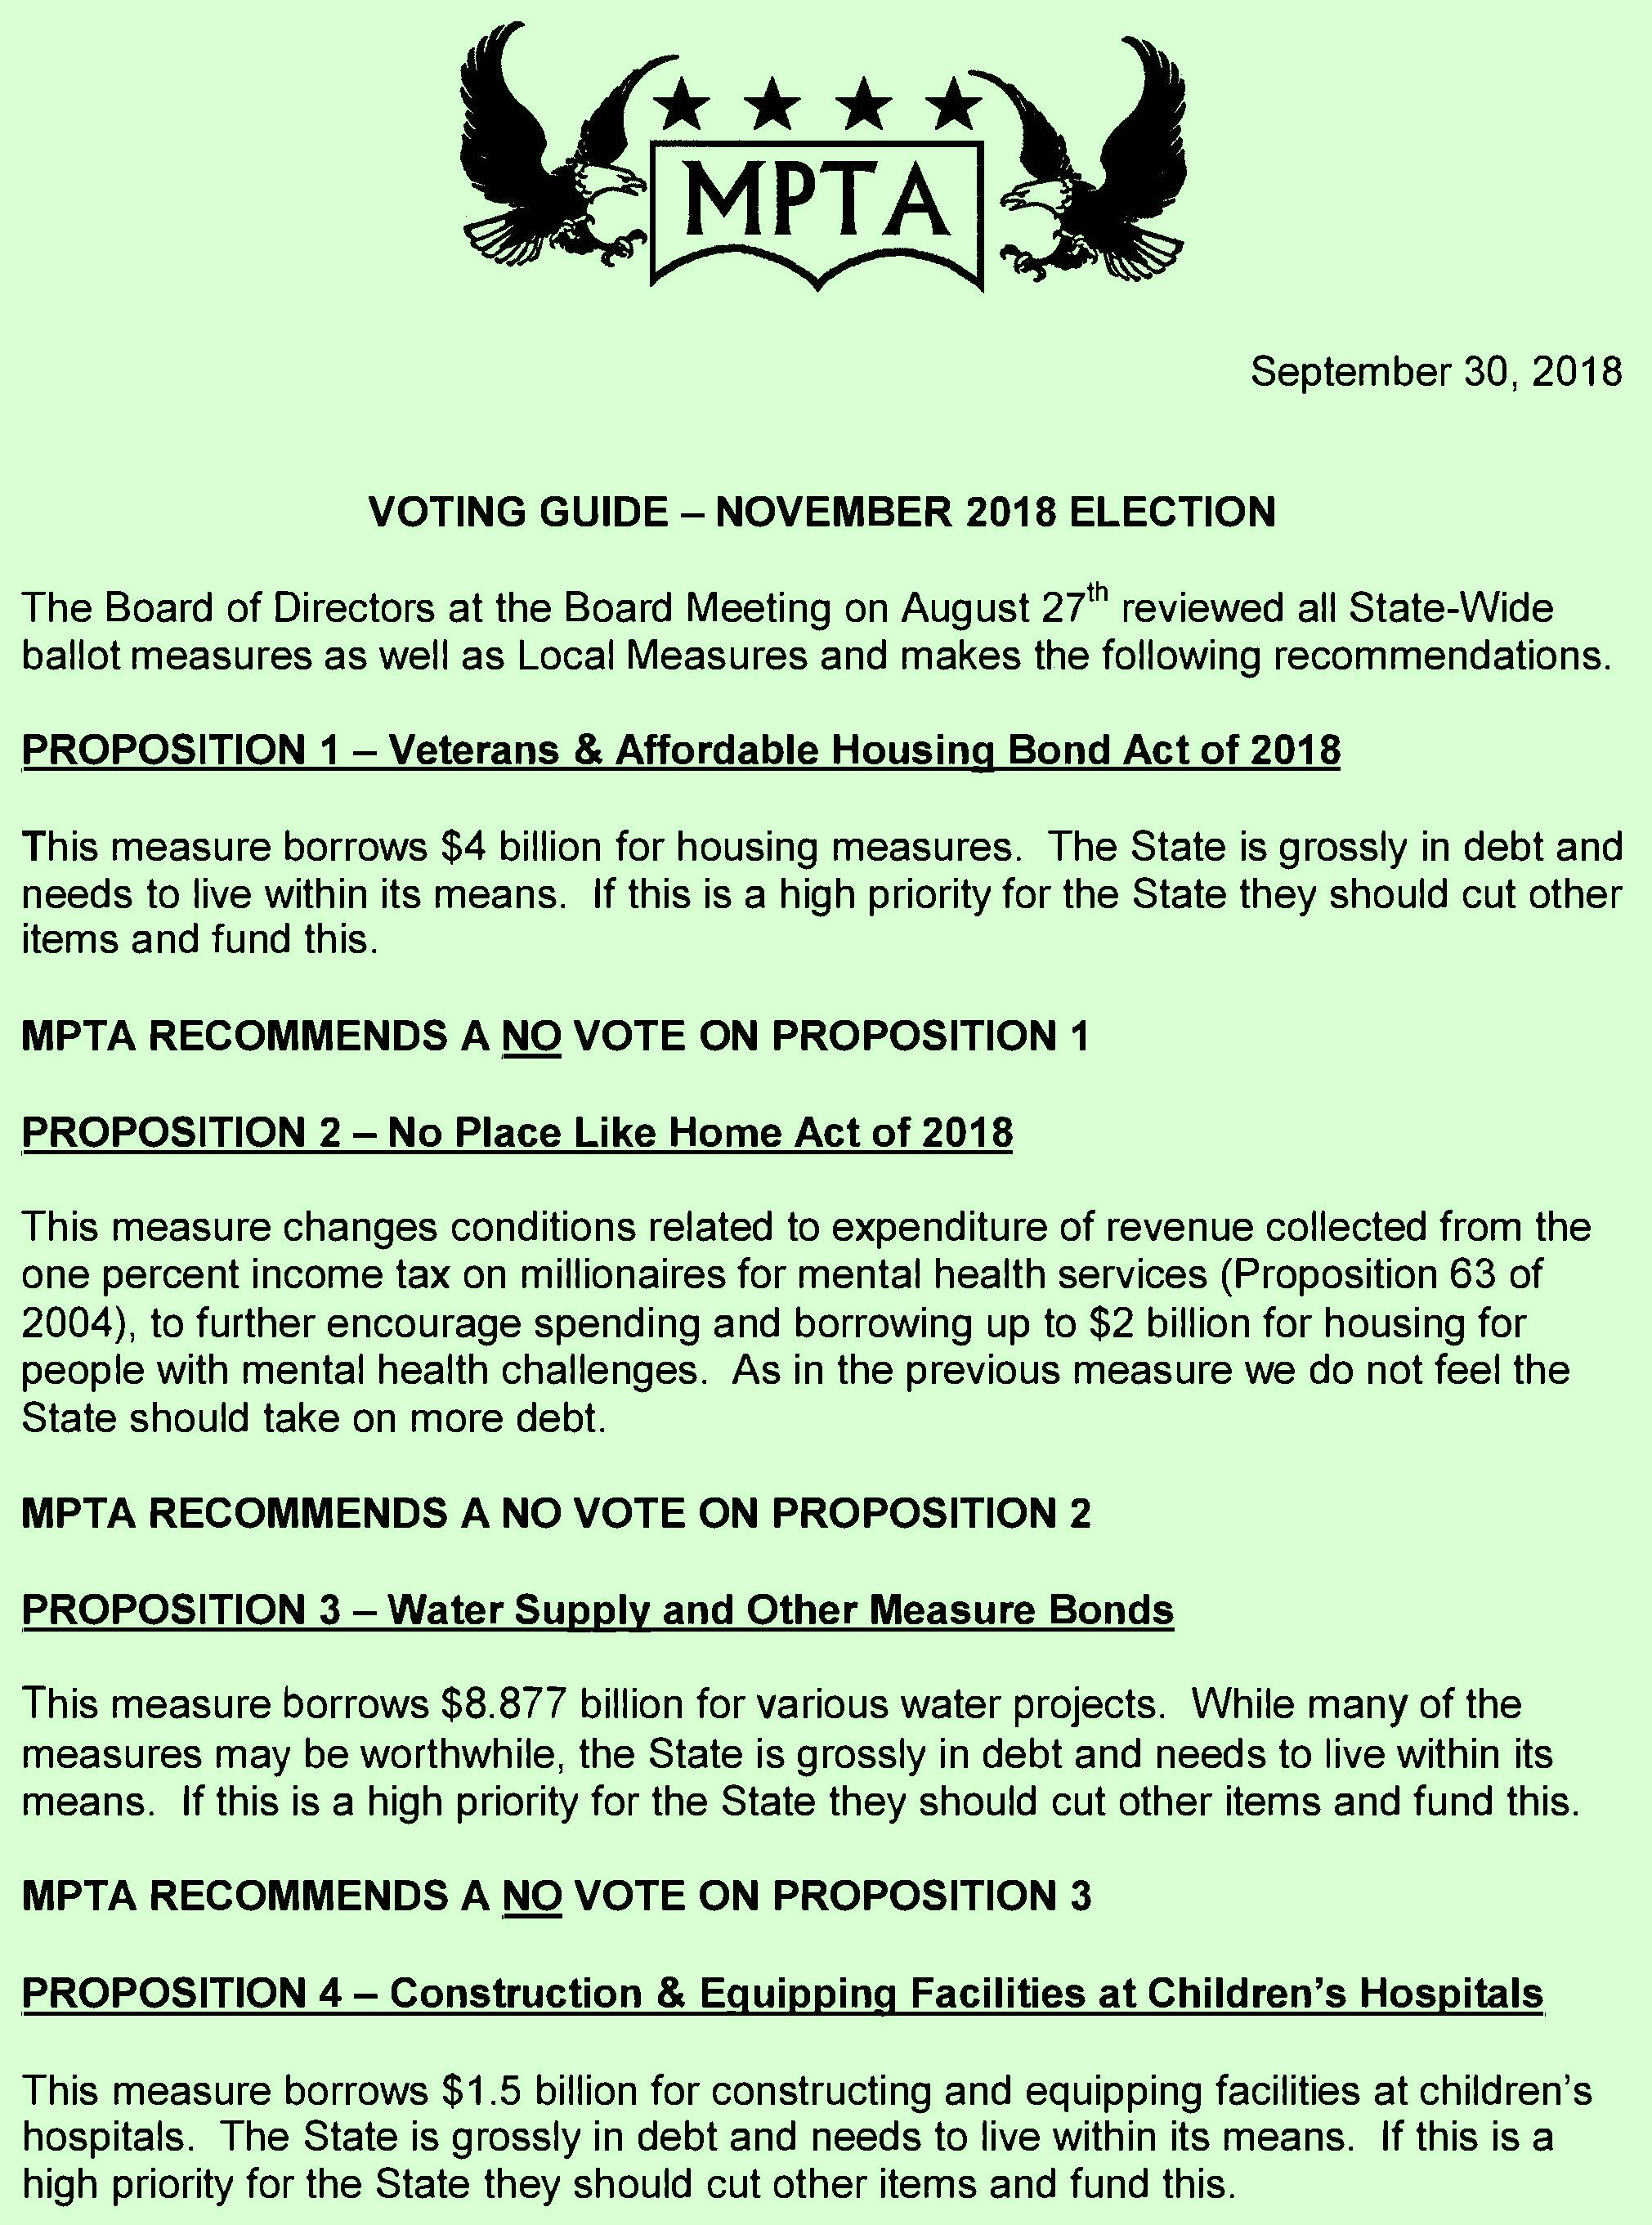 Monterey Peninsula Taxpayers Association November 2018 Election Recommendations Page 1